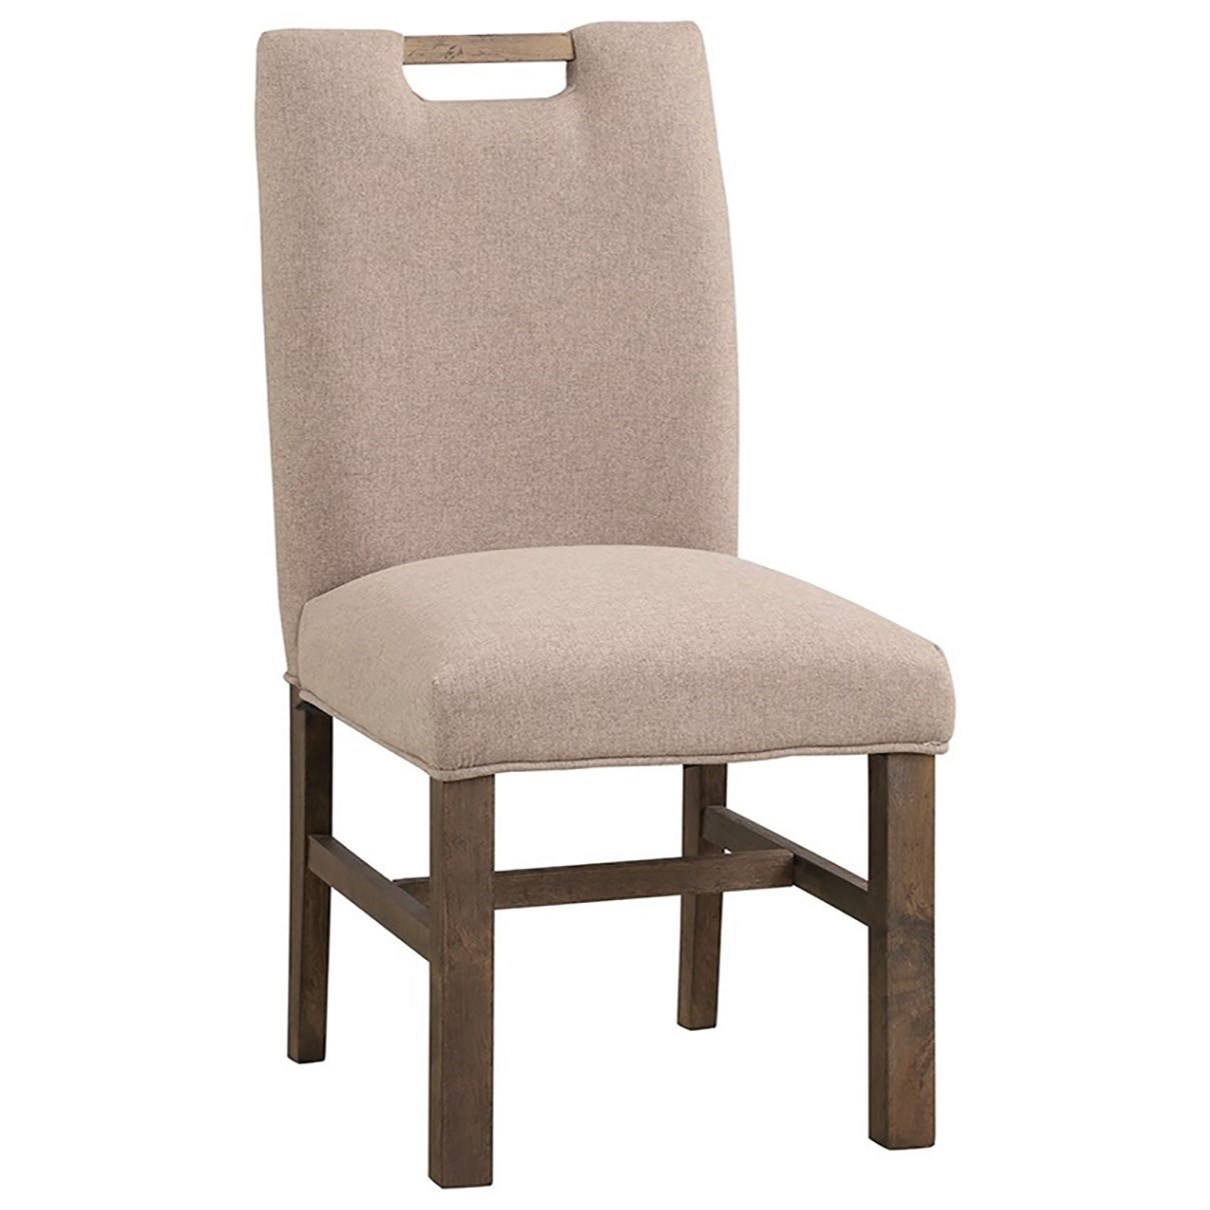 Arcadia Upholstered Side Chair by Legends Furniture at EFO Furniture Outlet